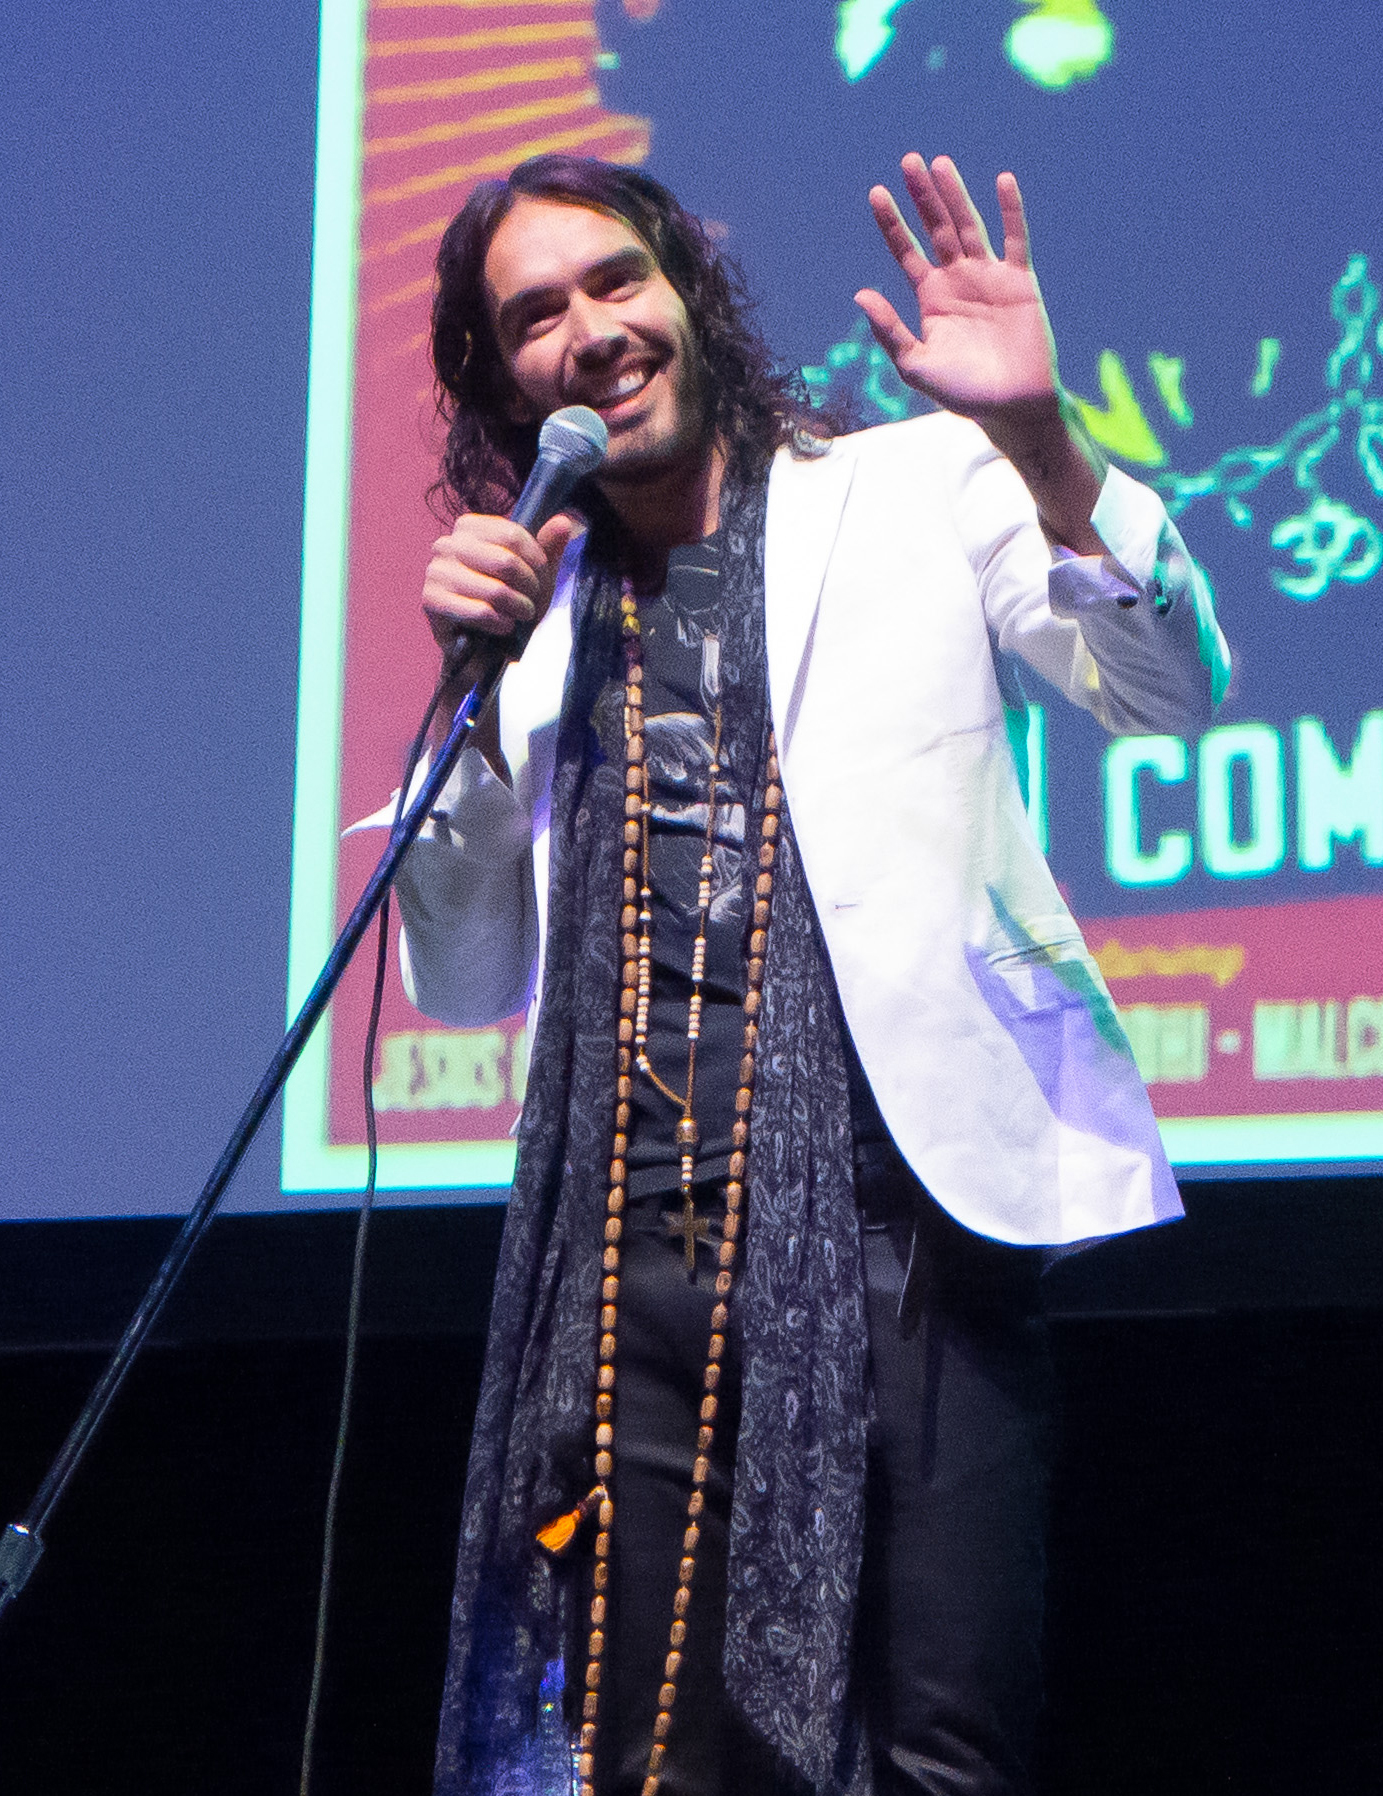 Russell Brand in Atlanta on September 29. (Splash News)